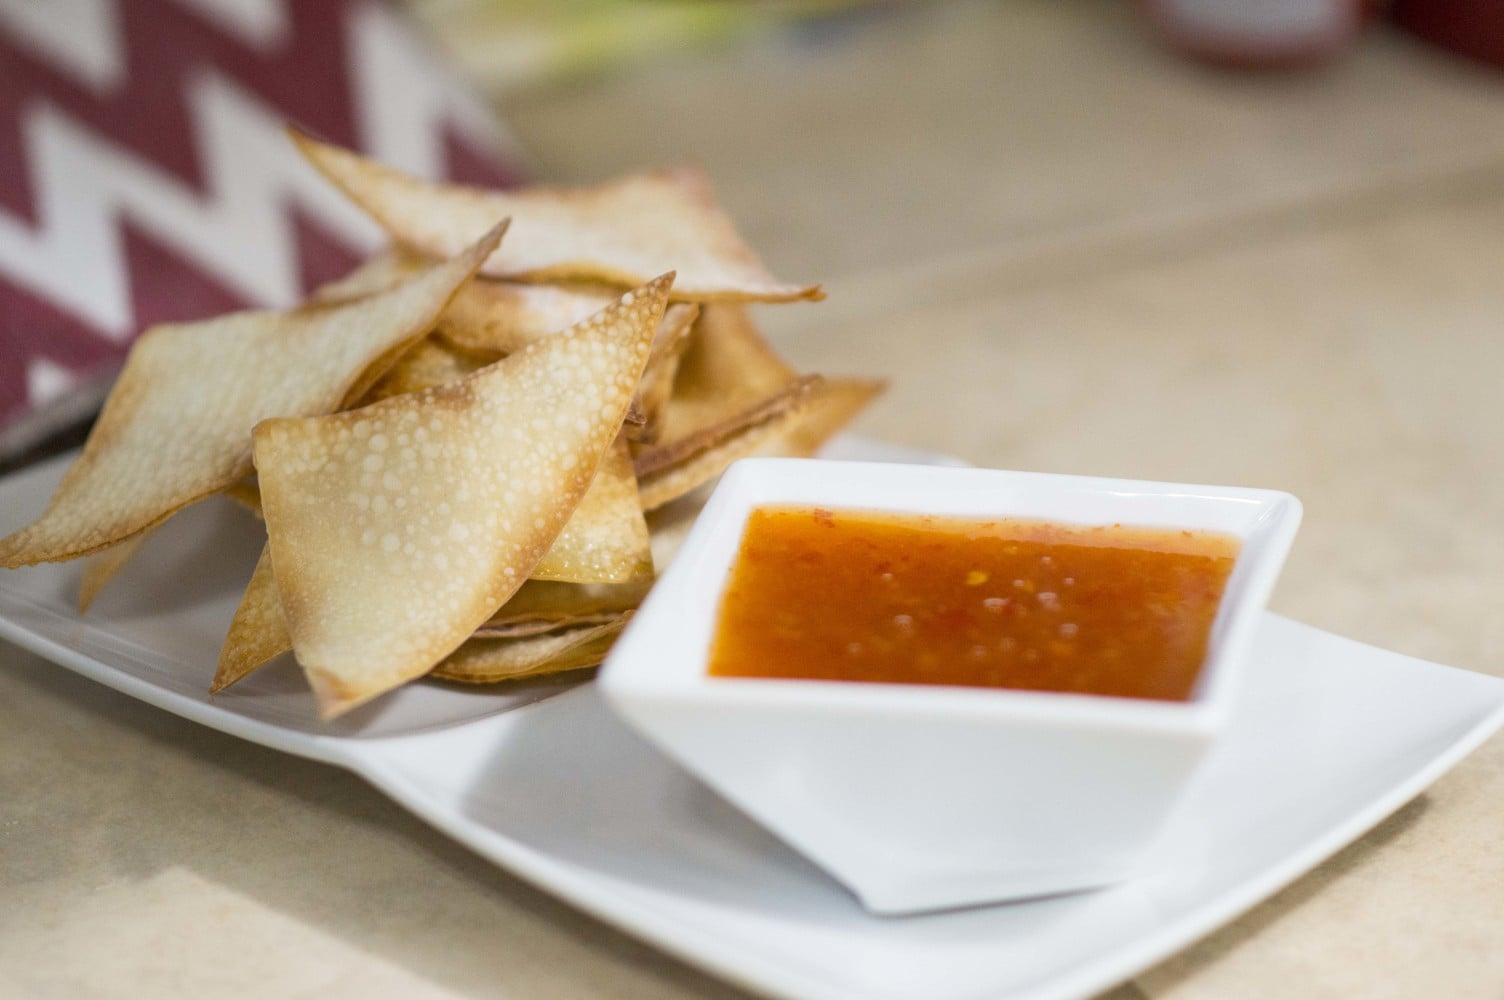 The sweet & sour sauce being served with wonton chips